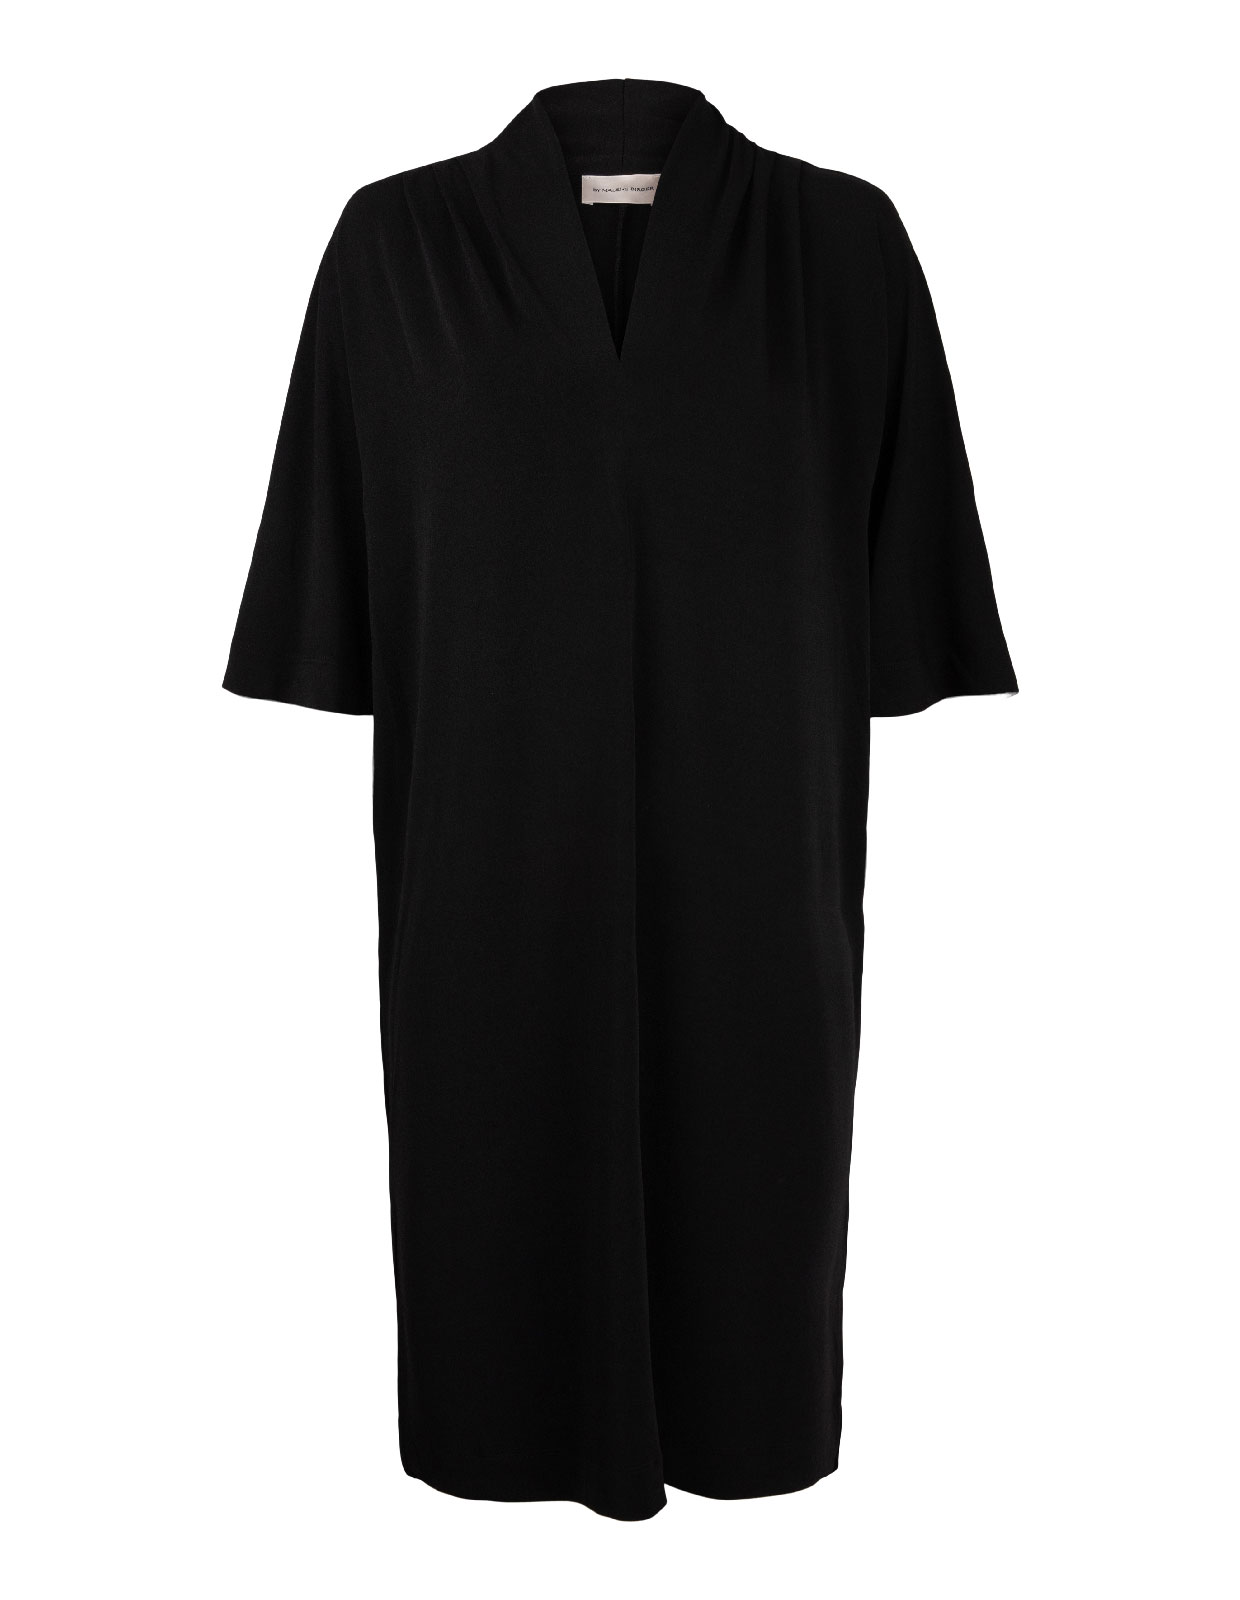 Bijou V-neck Dress Black